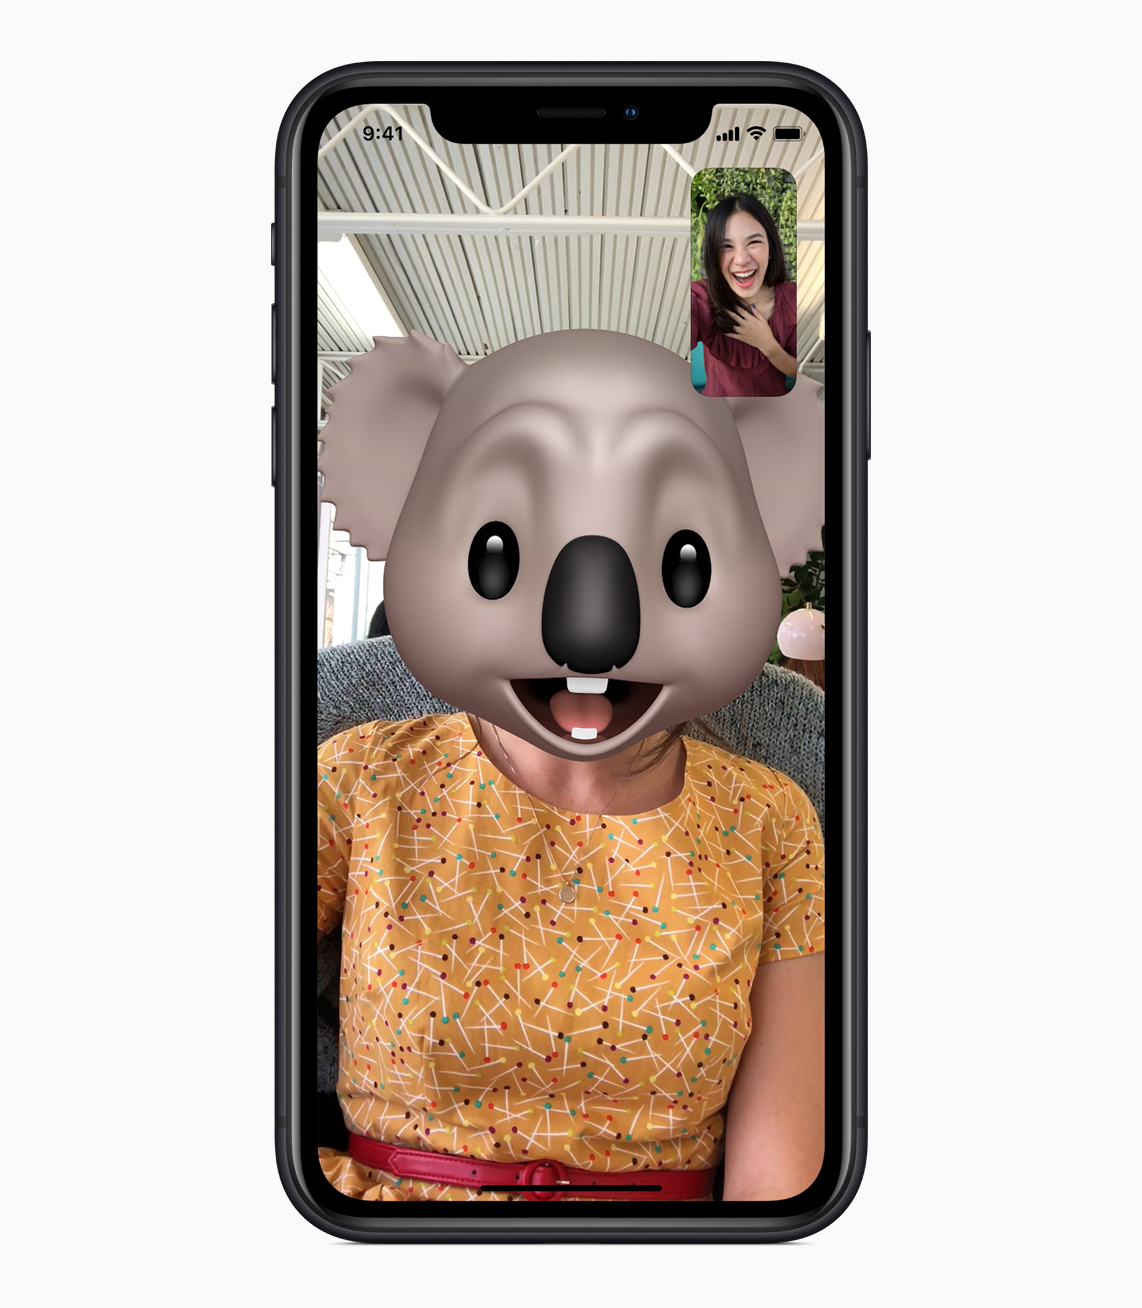 https://www.apple.com/newsroom/images/product/iphone/standard/iPhone_XR_memoji_09122018_inline.jpg.large_2x.jpg